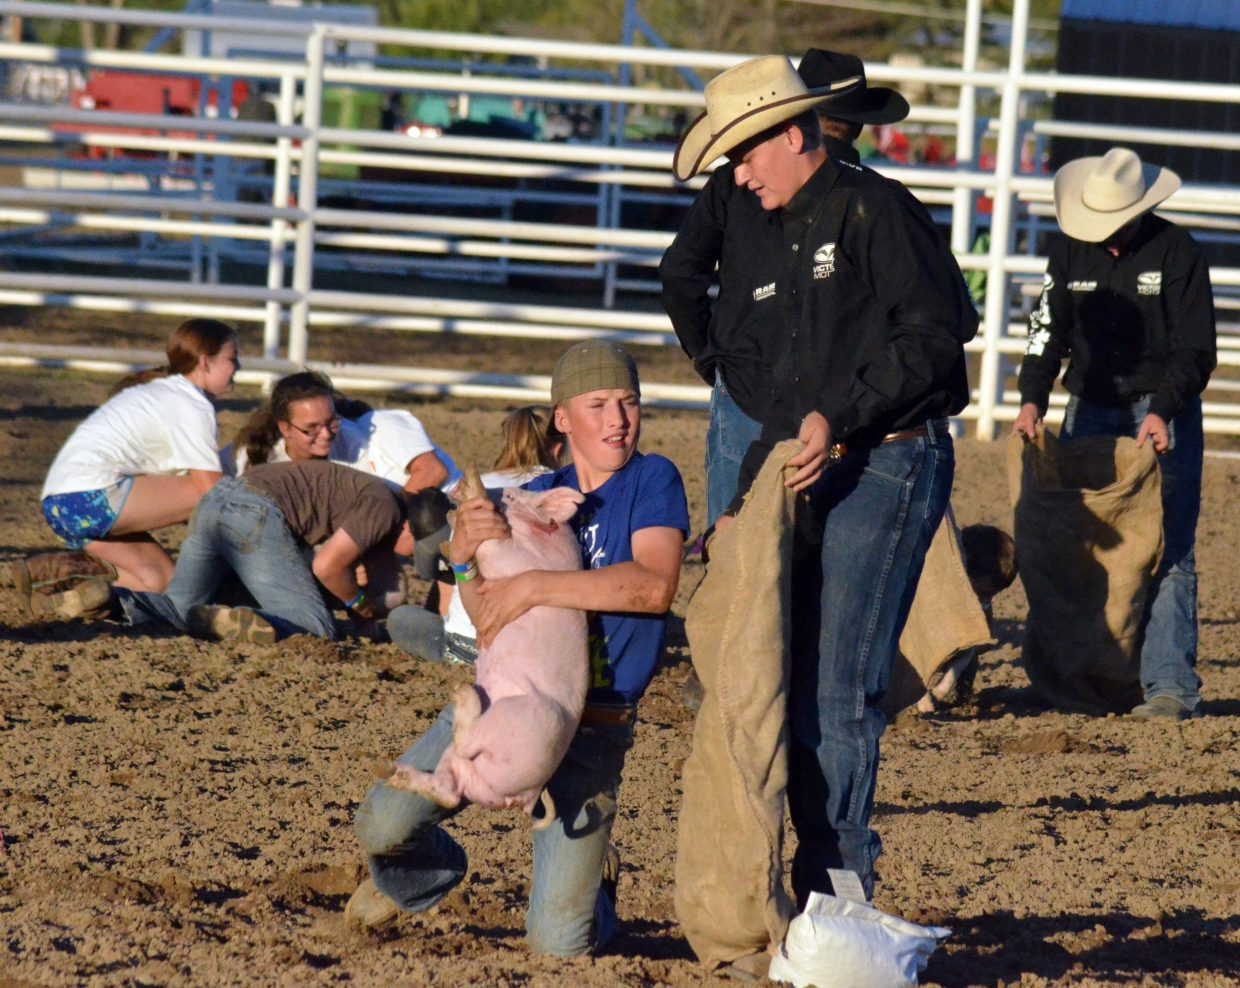 Entrants in the Catch-a-Pig contest Friday night at Moffat County Fairgrounds get their new animals under control. Kids who claimed a pig also received a bag of feed.